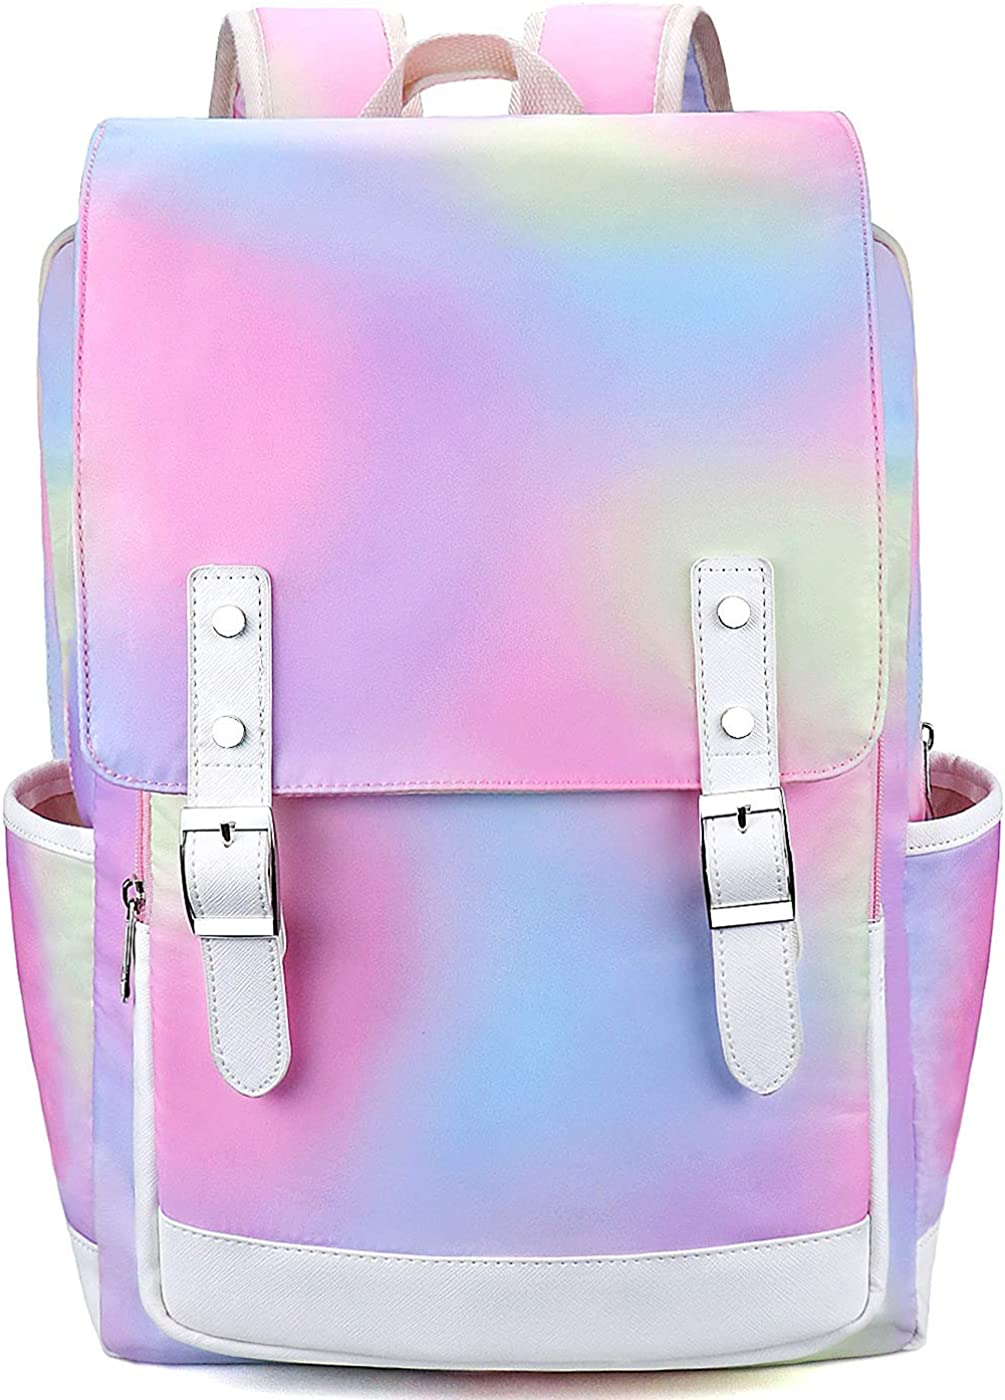 Laptop Backpack for Girls Women, College School Bookbags for Teenagers